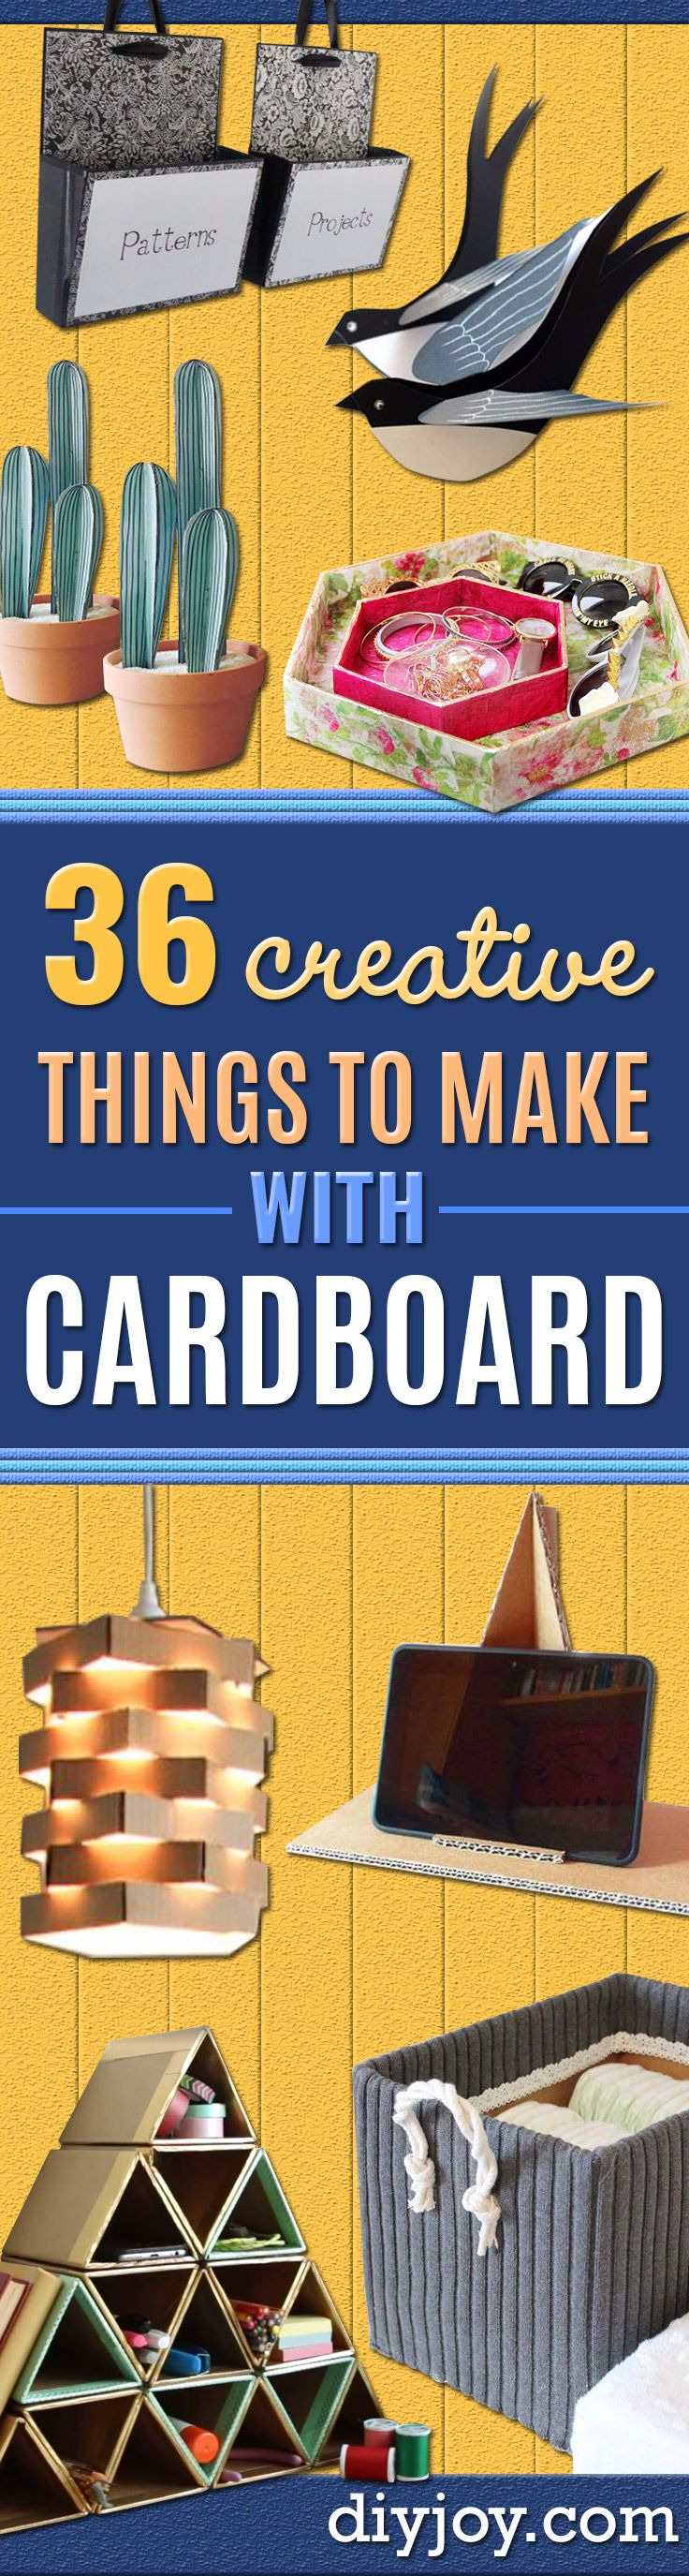 36 Creative Things to Make With Cardboard | Pinterest | Decor crafts ...